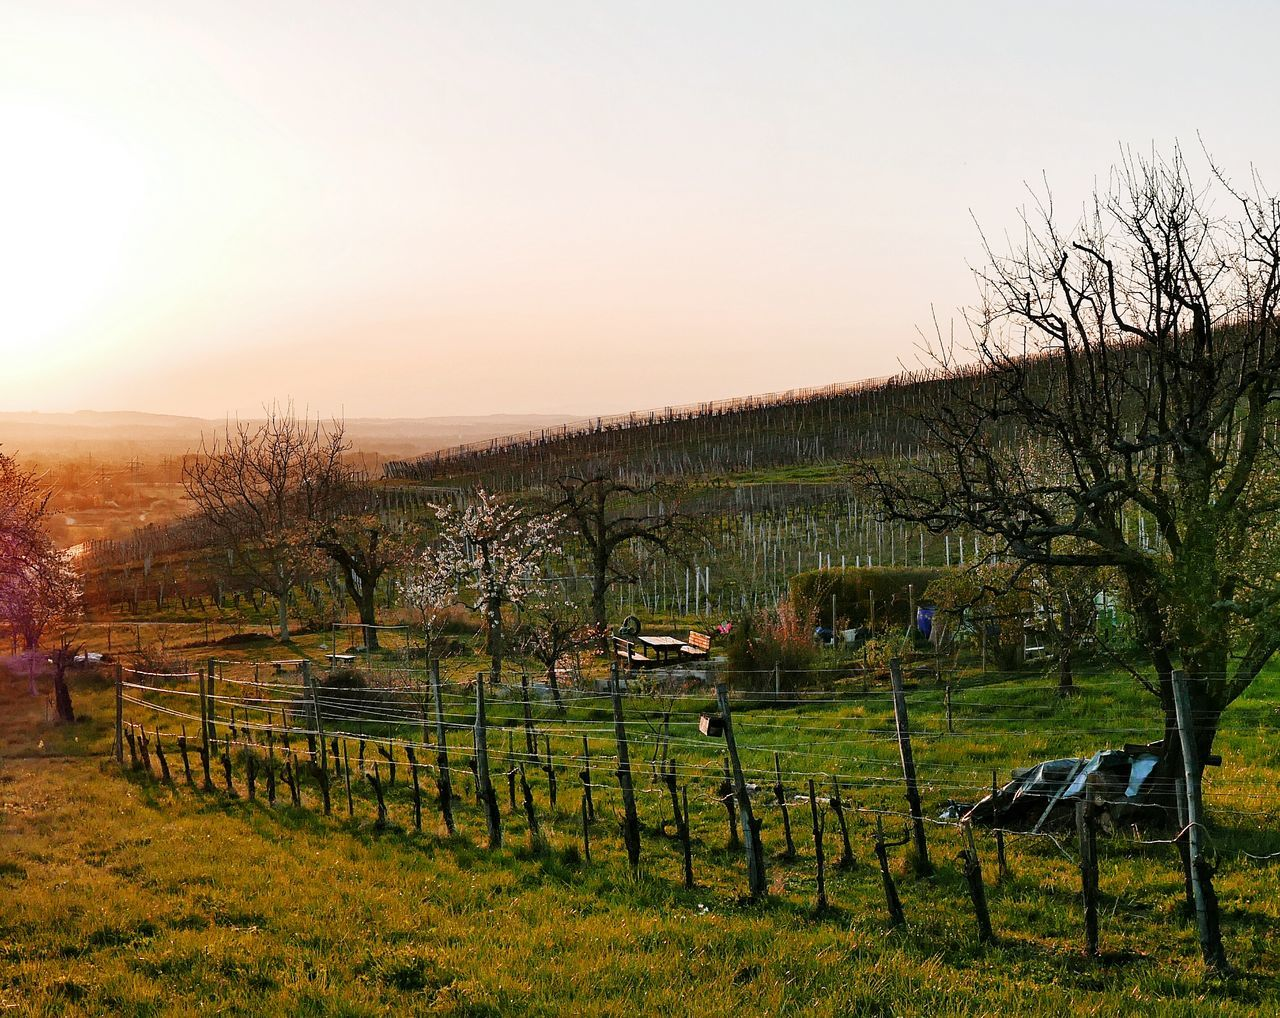 Tischleindeckdich! Wine Moments Agriculture Beauty In Nature Rural Scene Scenics Tree Nature Tranquility Sky Growth Idyllic Landscape Outdoors Sun No People Tranquil Scene Mountain View Landscape_Collection Black Forest !!!! Winery View Wineroute Sunset Silhouettes Spring Time Sunset